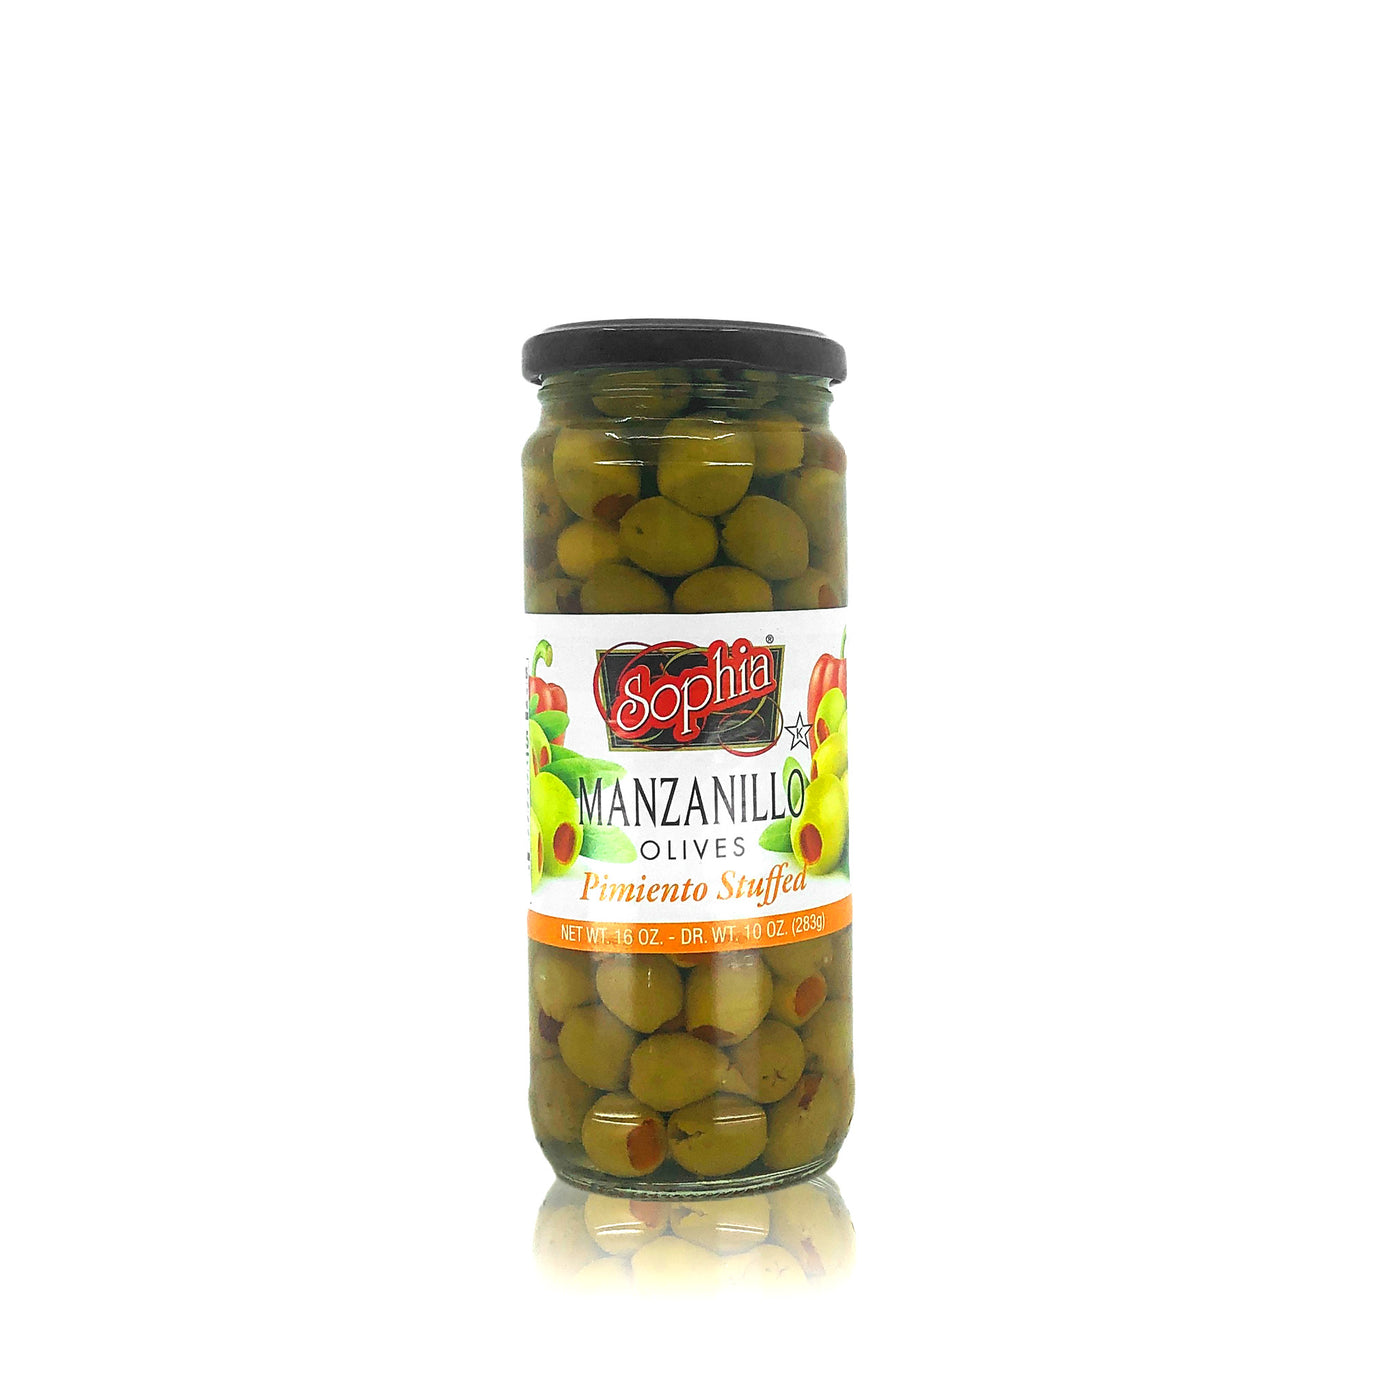 Sophia Olives - Spanish Manzanillo, Stuffed 16oz